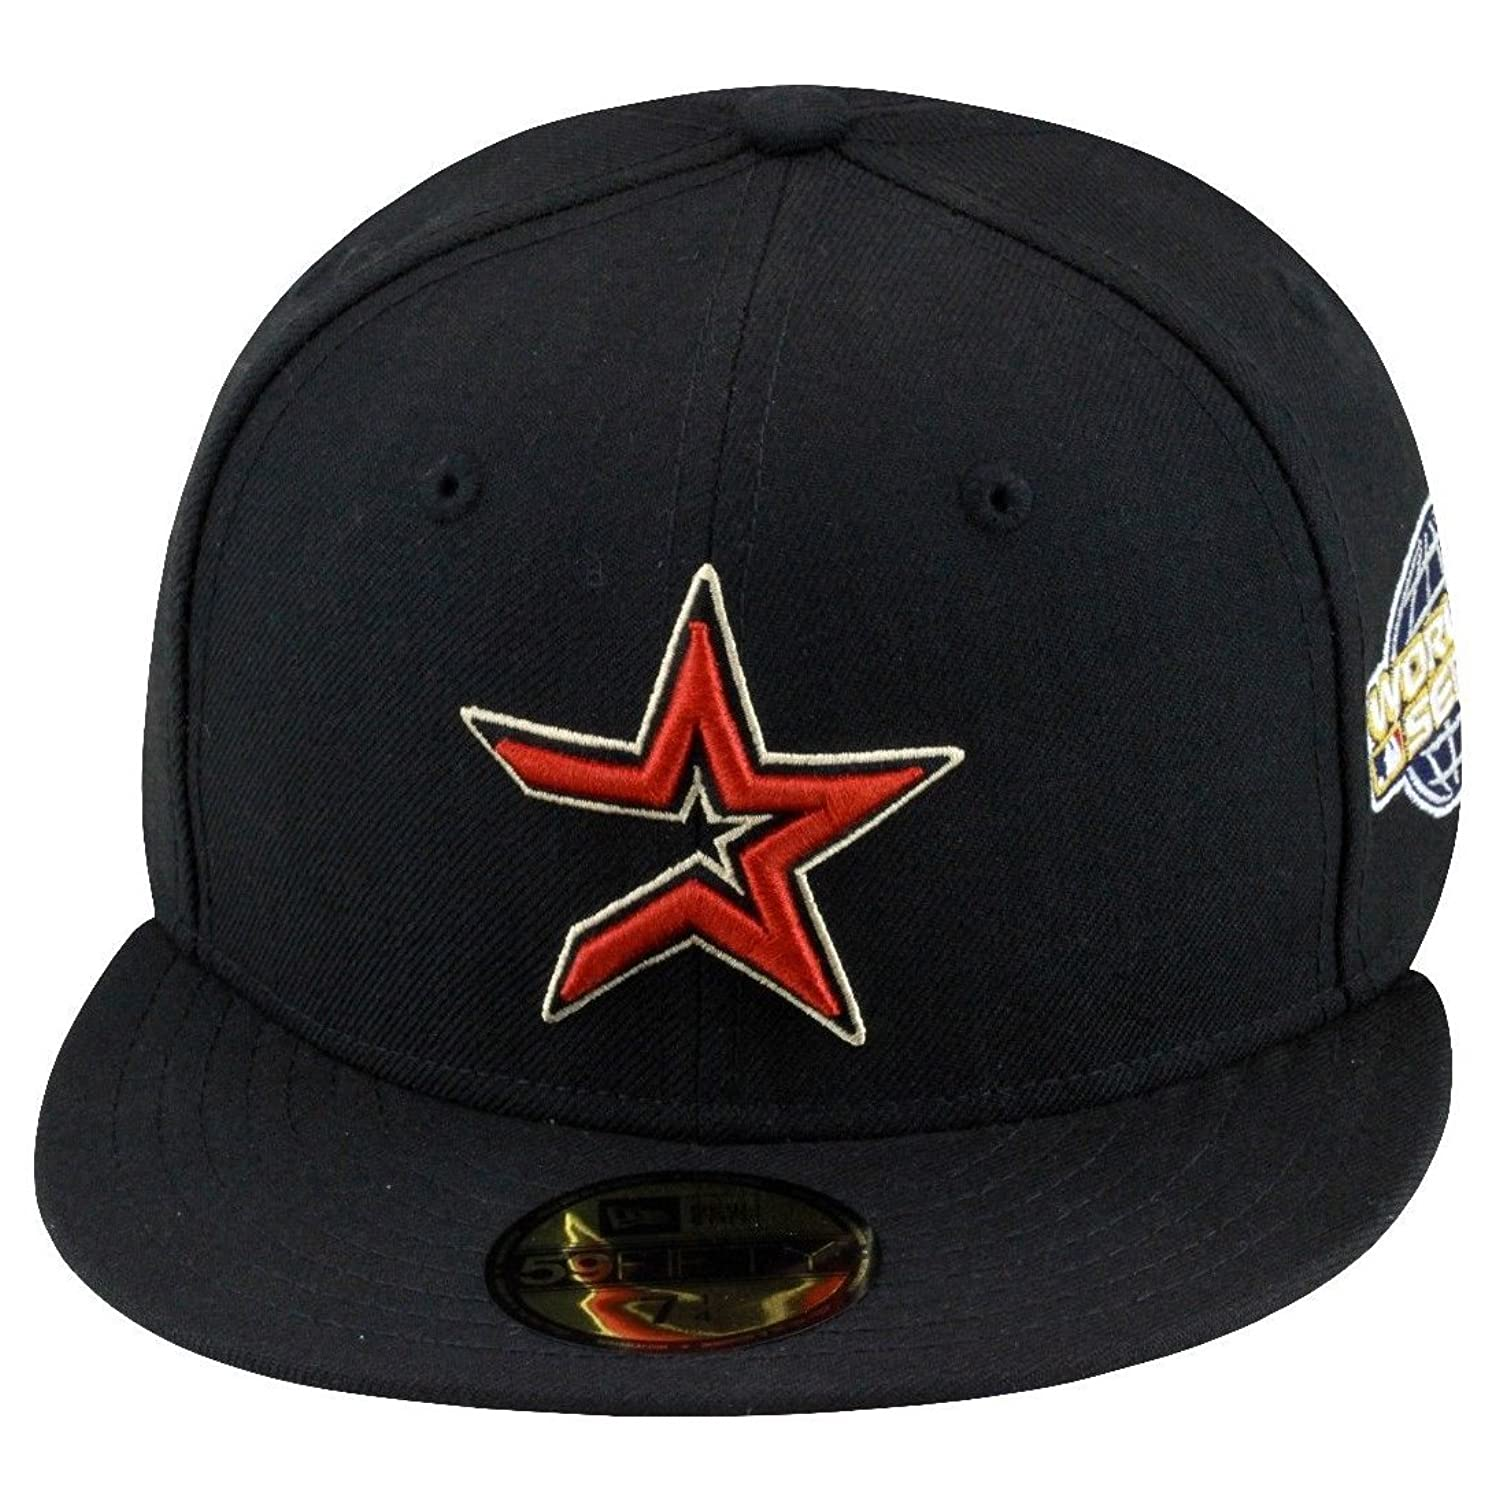 bdf3f77283f Amazon.com   MLB Houston Astros Authentic On Field Alternate 59FIFTY ...